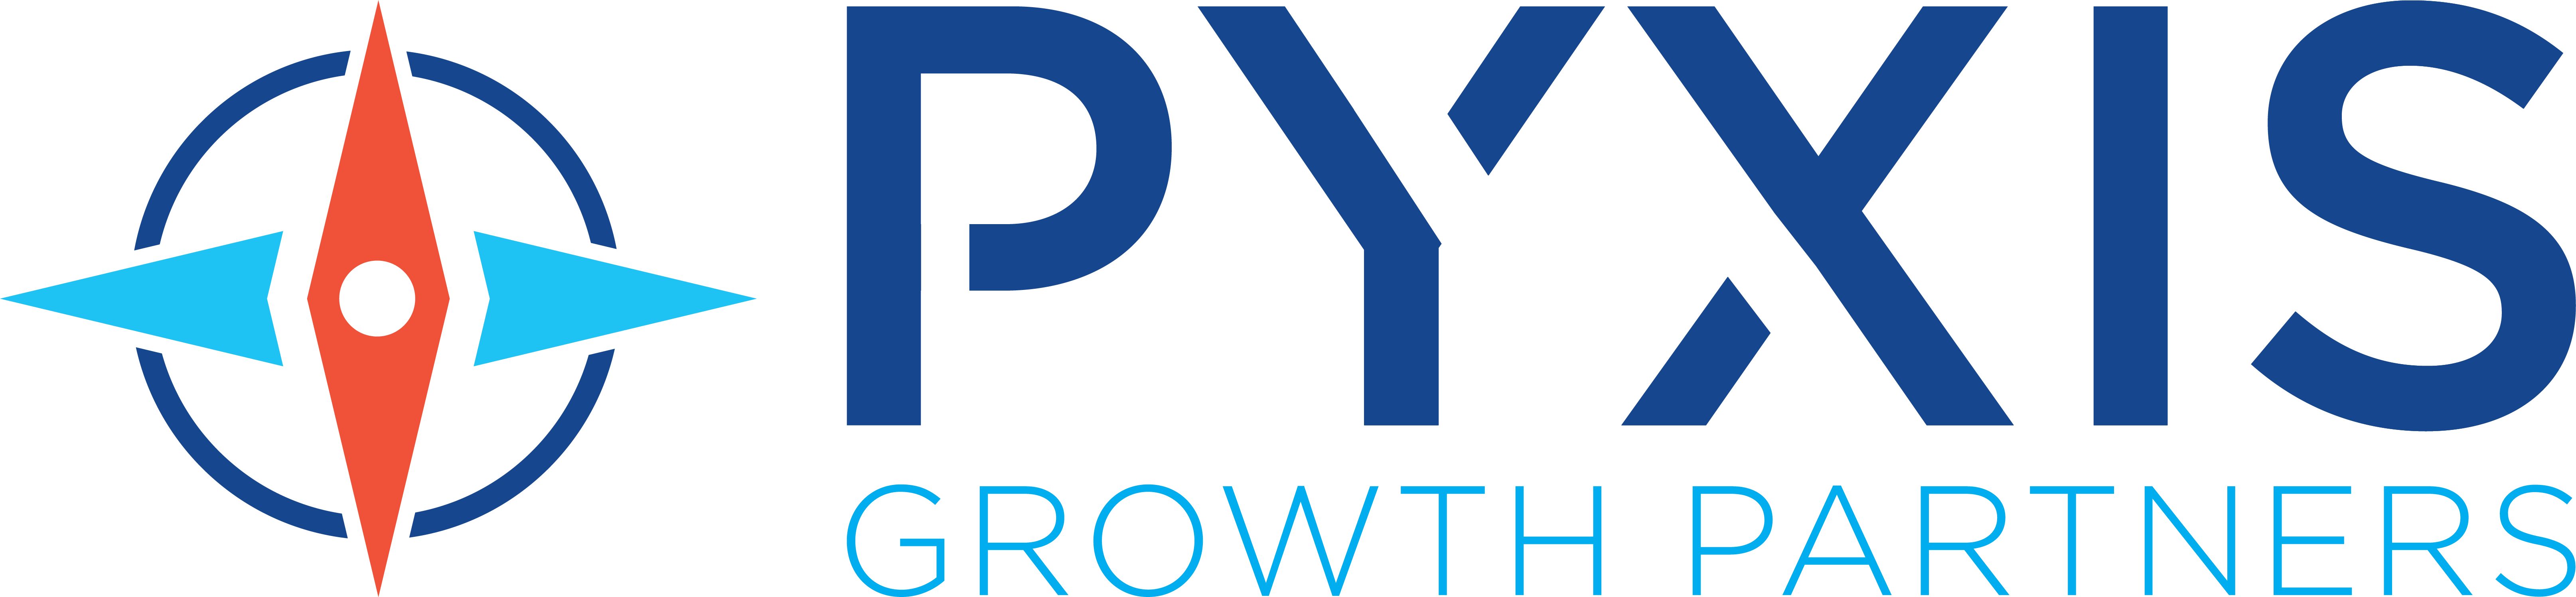 Pyxis Growth Partners Logo